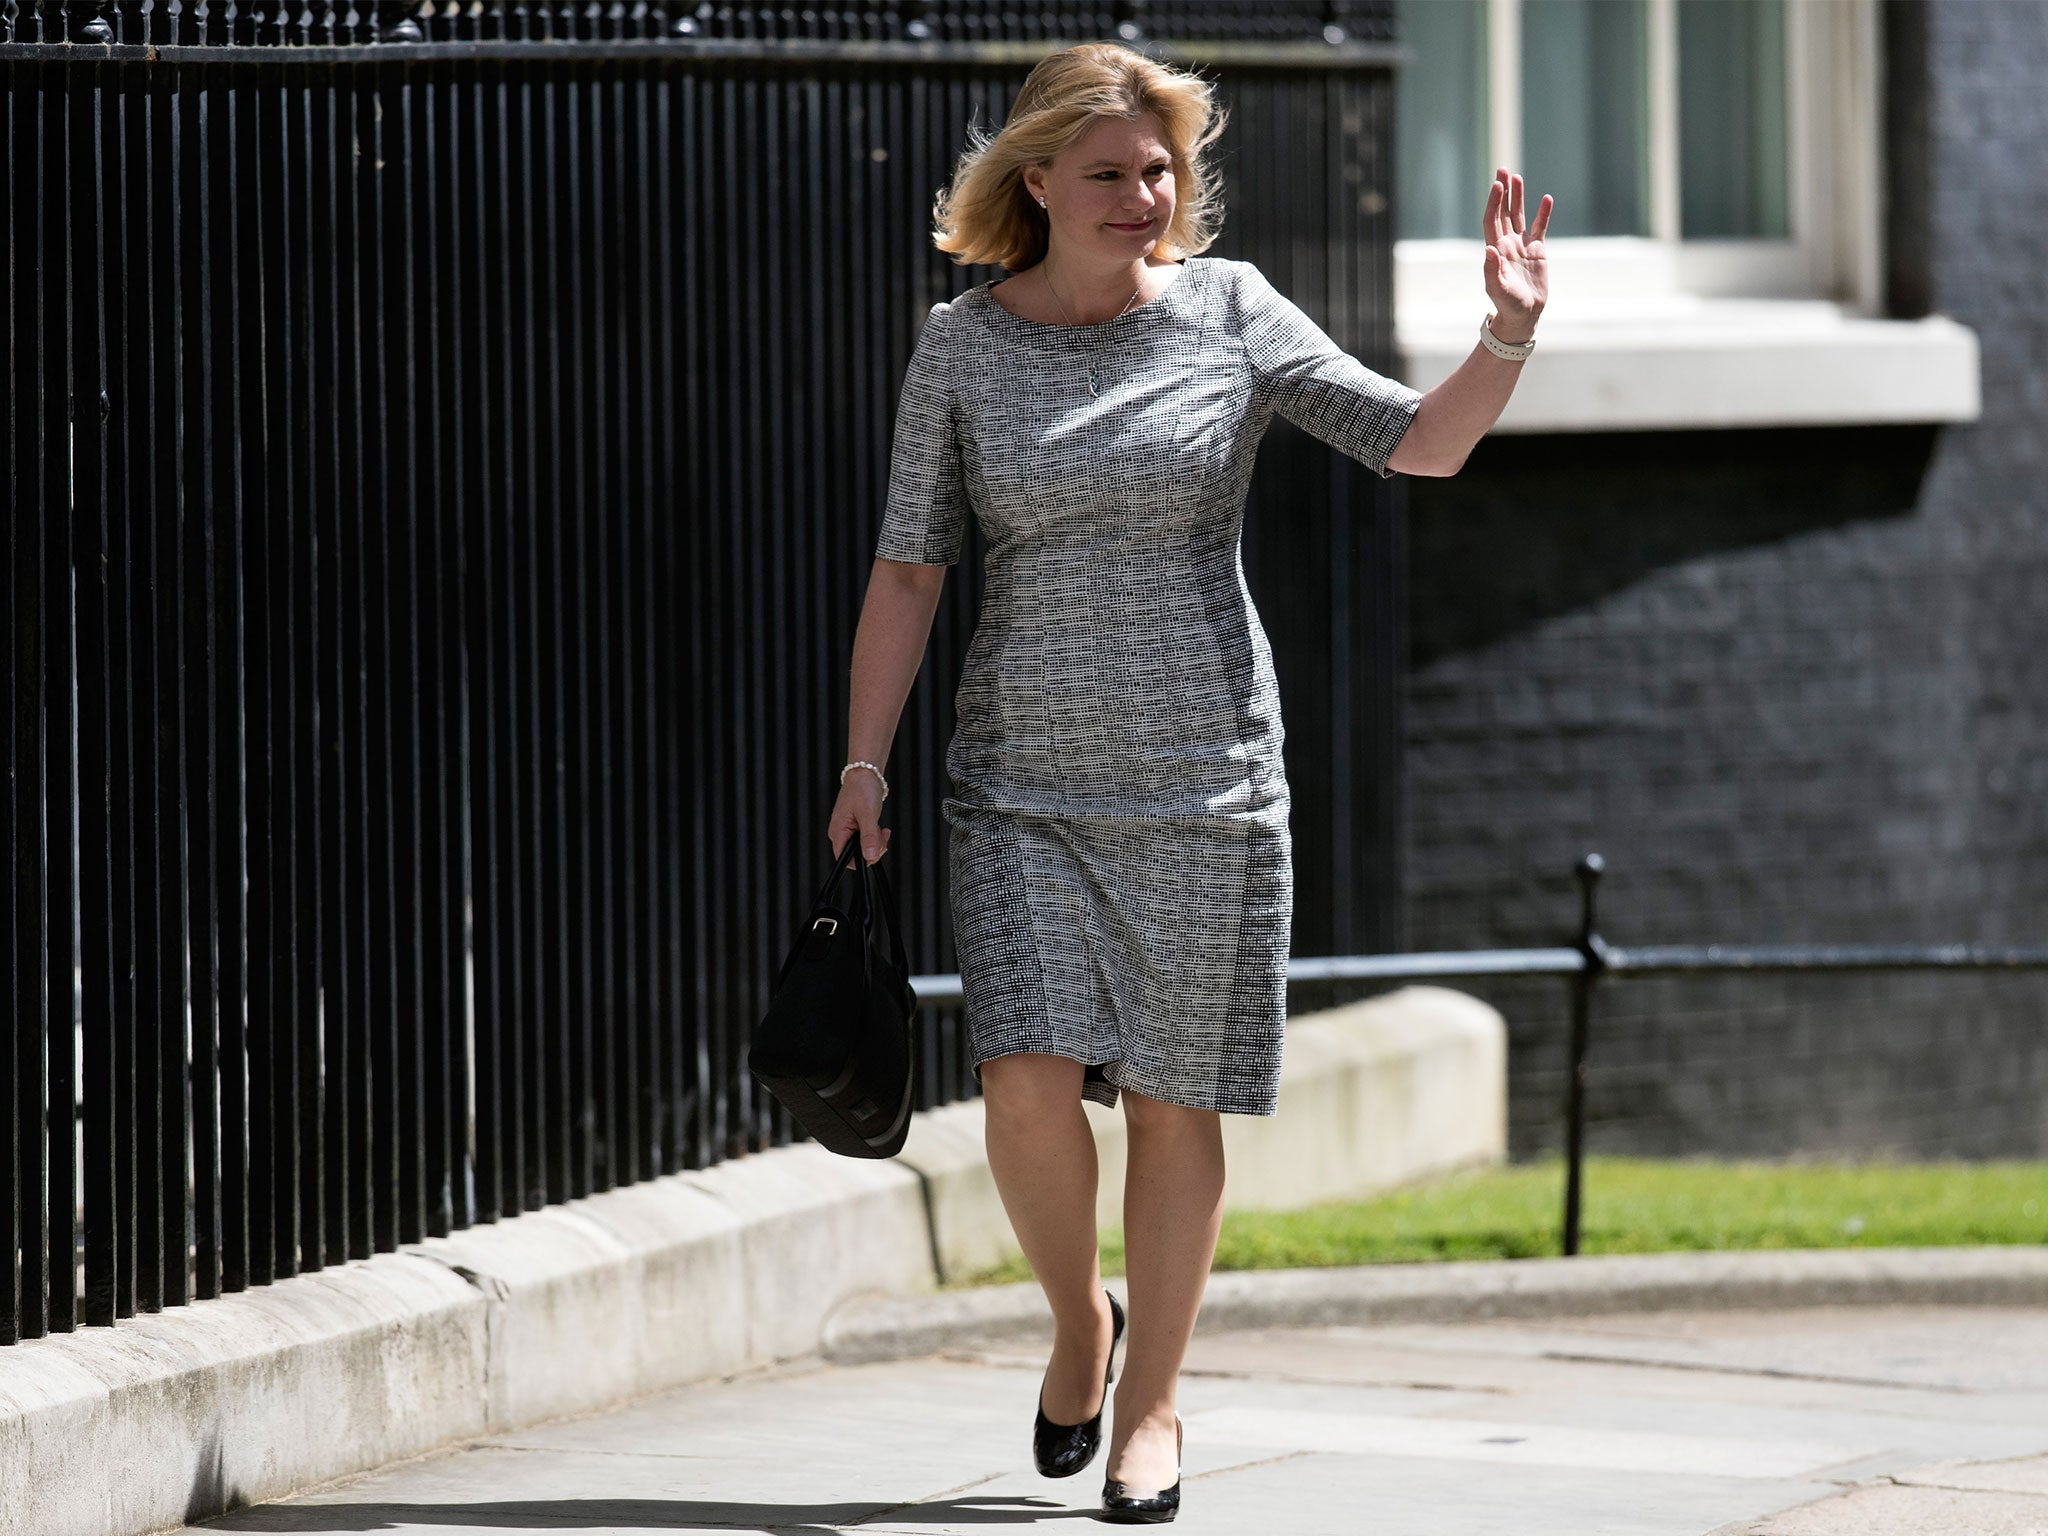 Justine Greening Becomes First Education Secretary With